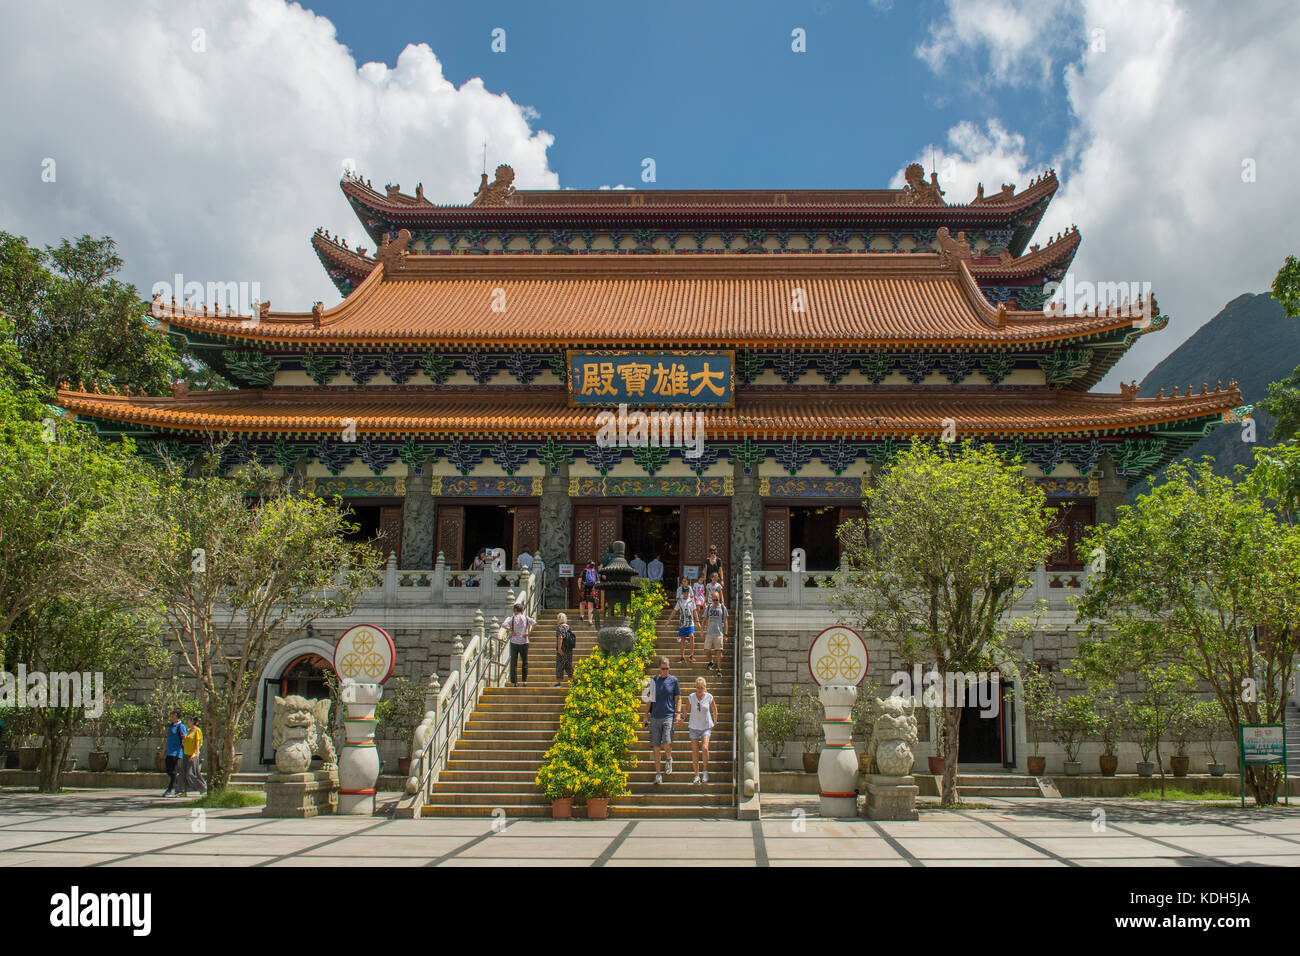 Second Hall, Po Lin Monastery, Lantau Island, Hong Kong, China - Stock Image